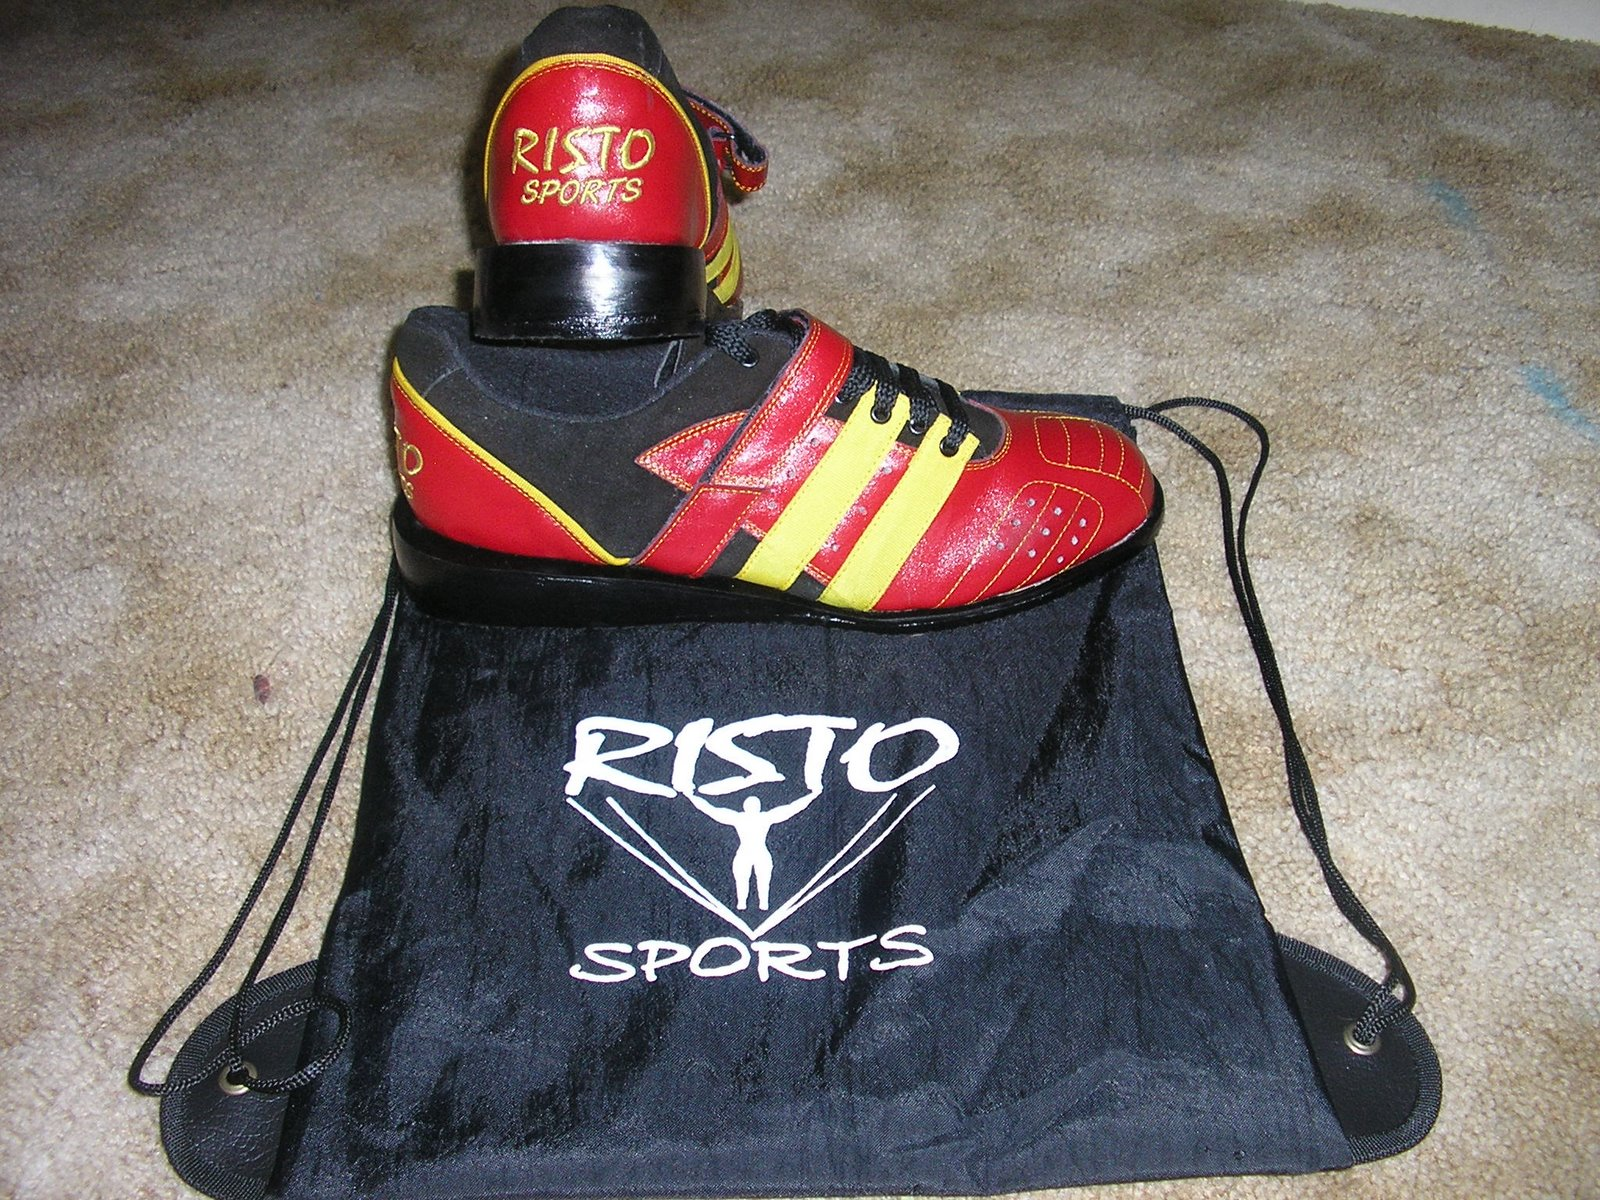 Risto Weight lifting Shoes with carrying bag